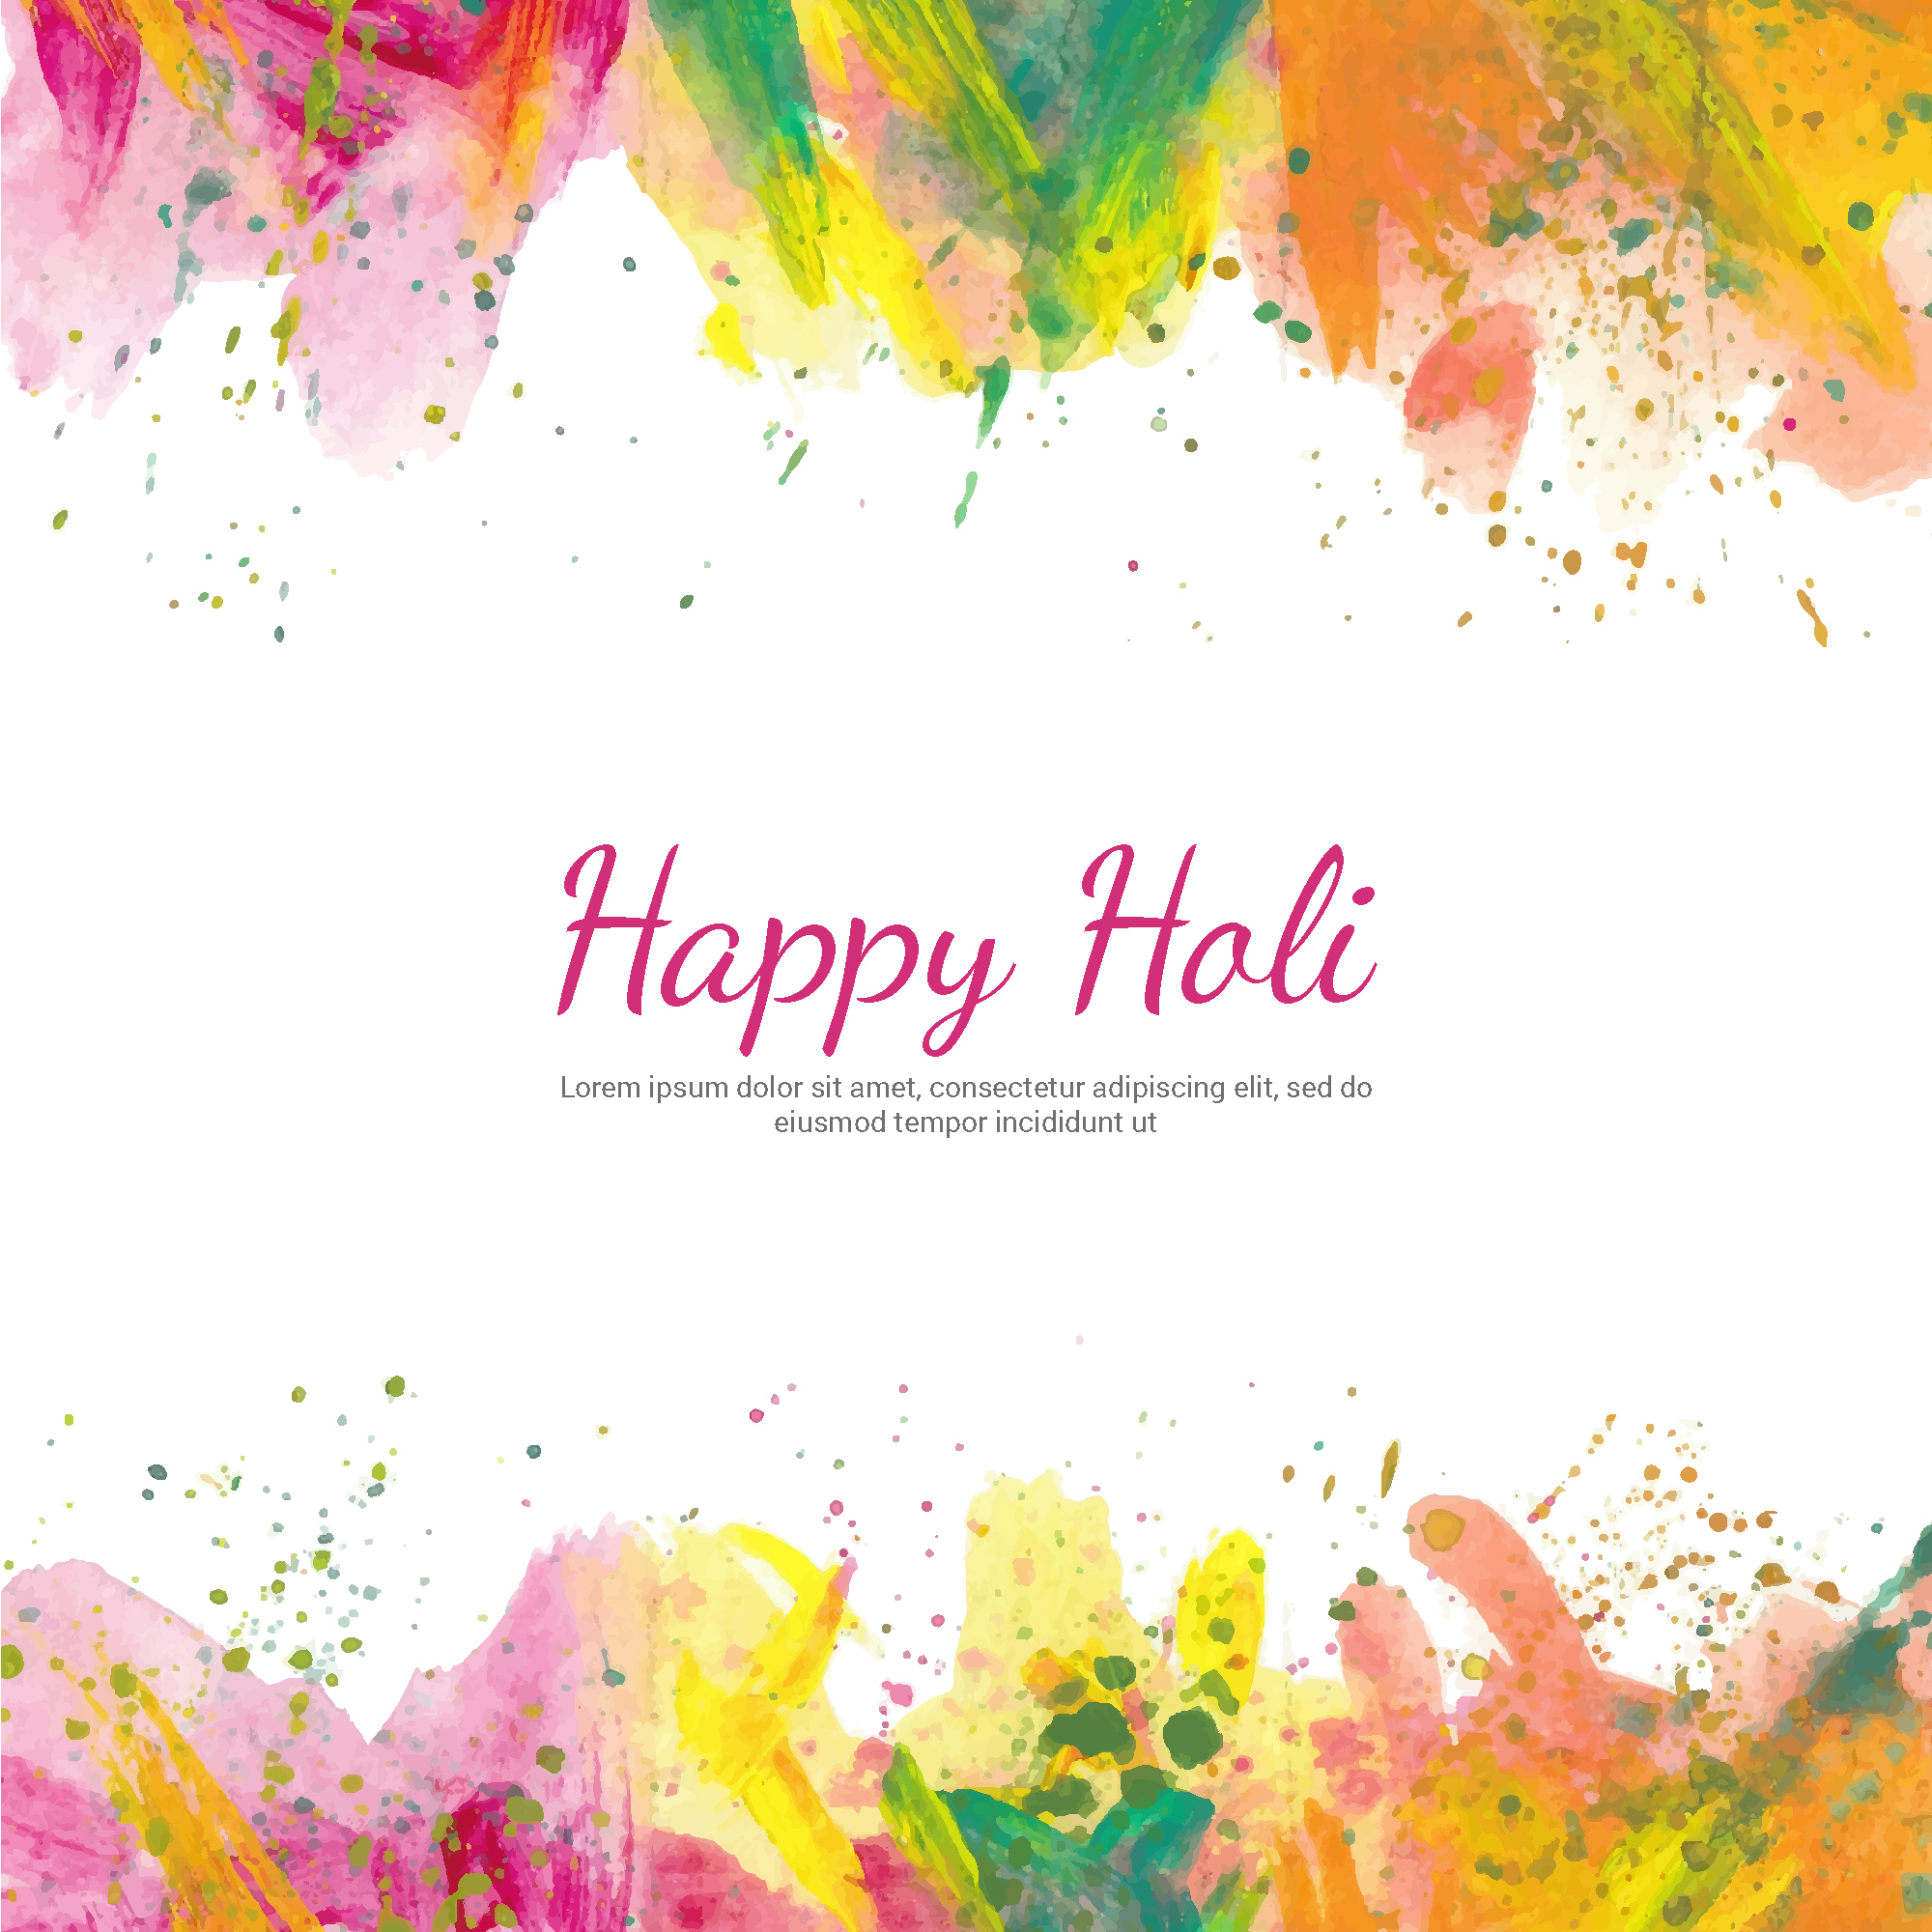 Holi background with watercolors